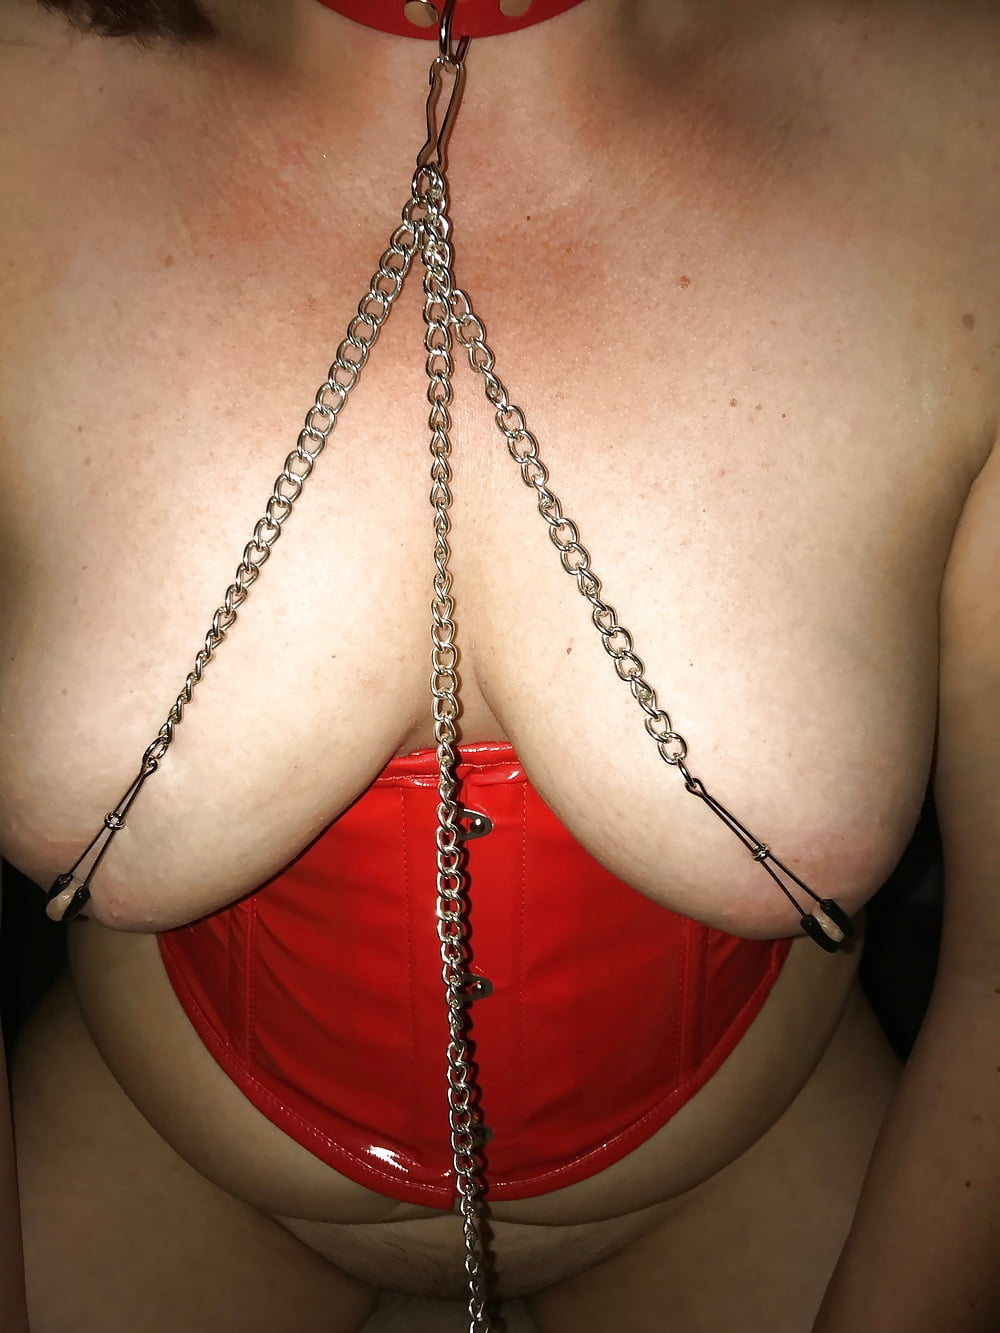 Bald pussy nipple clamps — photo 4